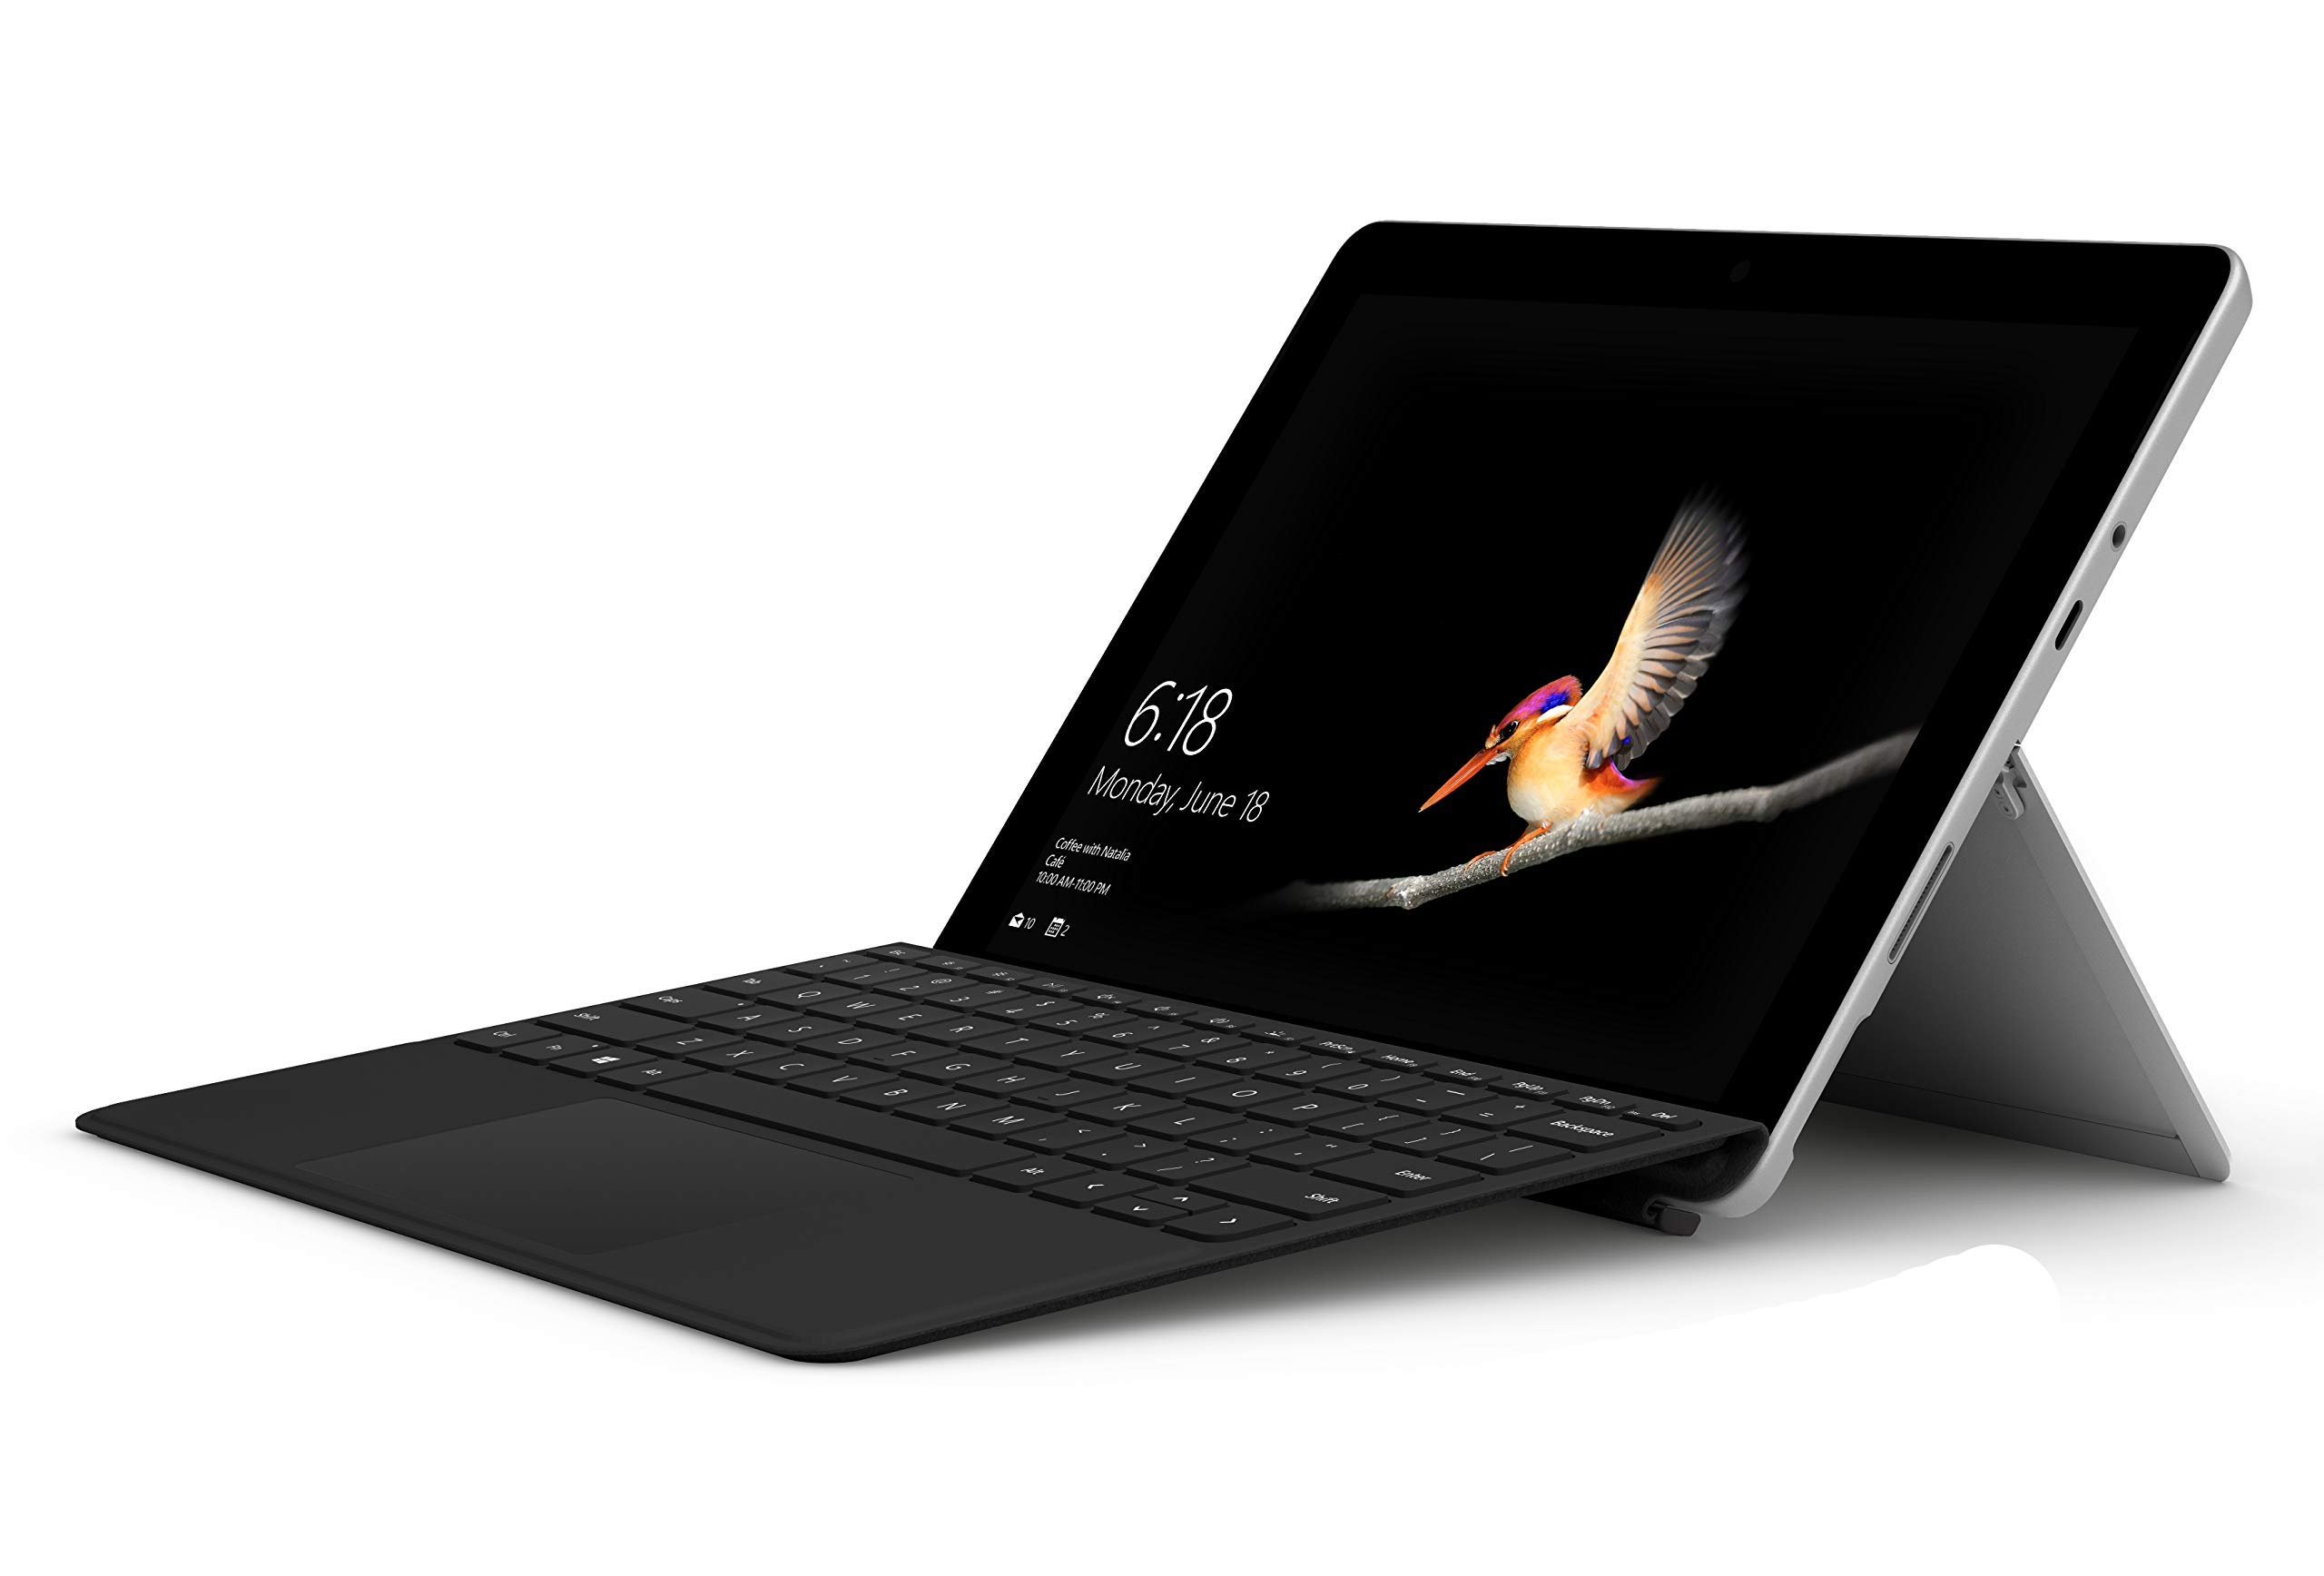 Microsoft Surface Go with Type Cover Bundle 10'' Touchscreen PixelSense Intel Pentium Gold 4415Y 128GB SSD Windows 10 by Microsoft (Image #1)